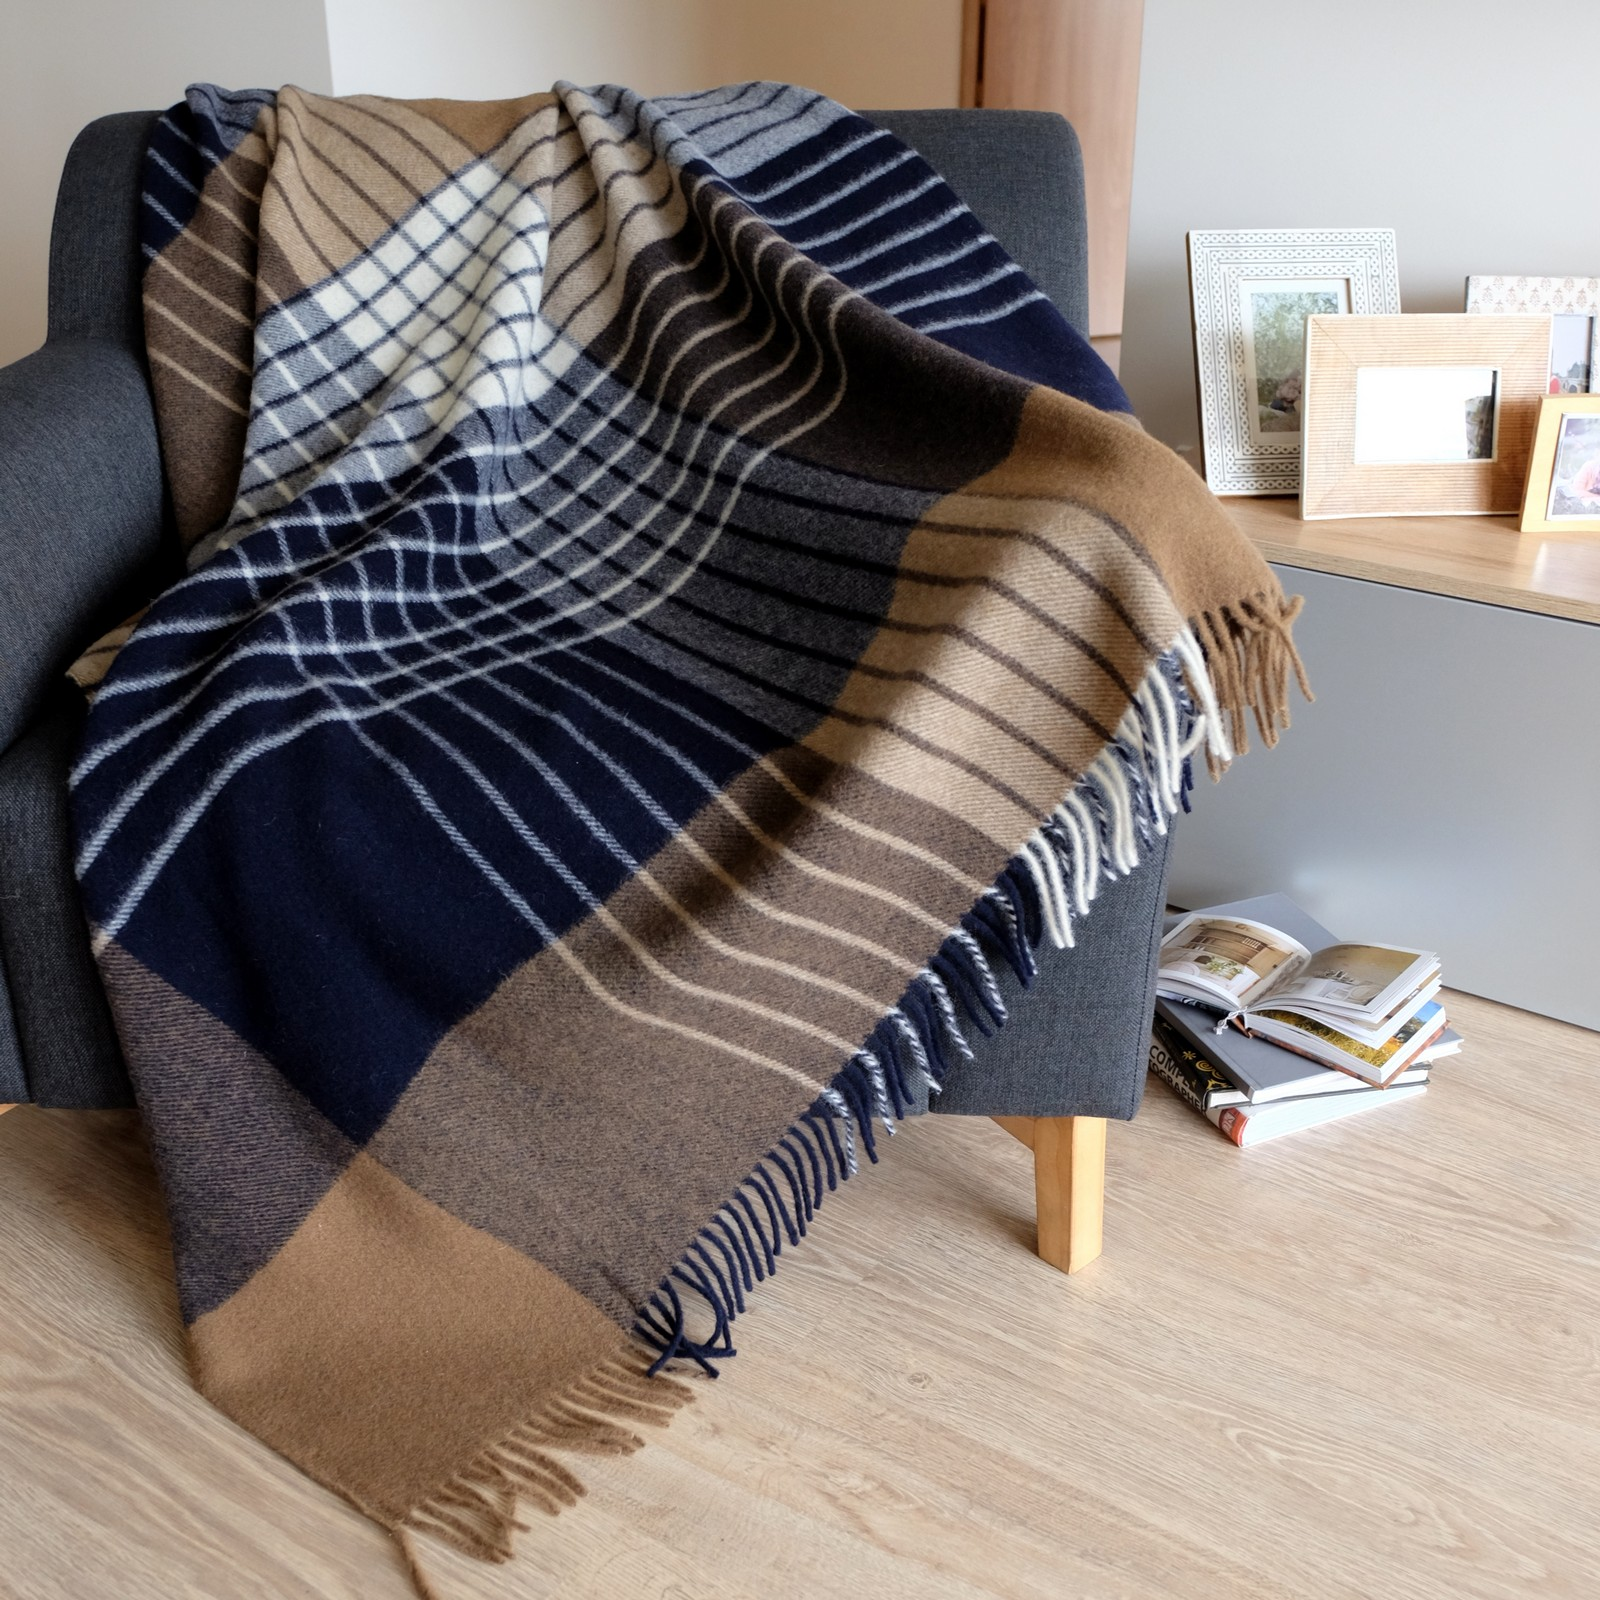 Luxury extra soft sofa bed throw blanket maori 100 for Sofa bed new zealand